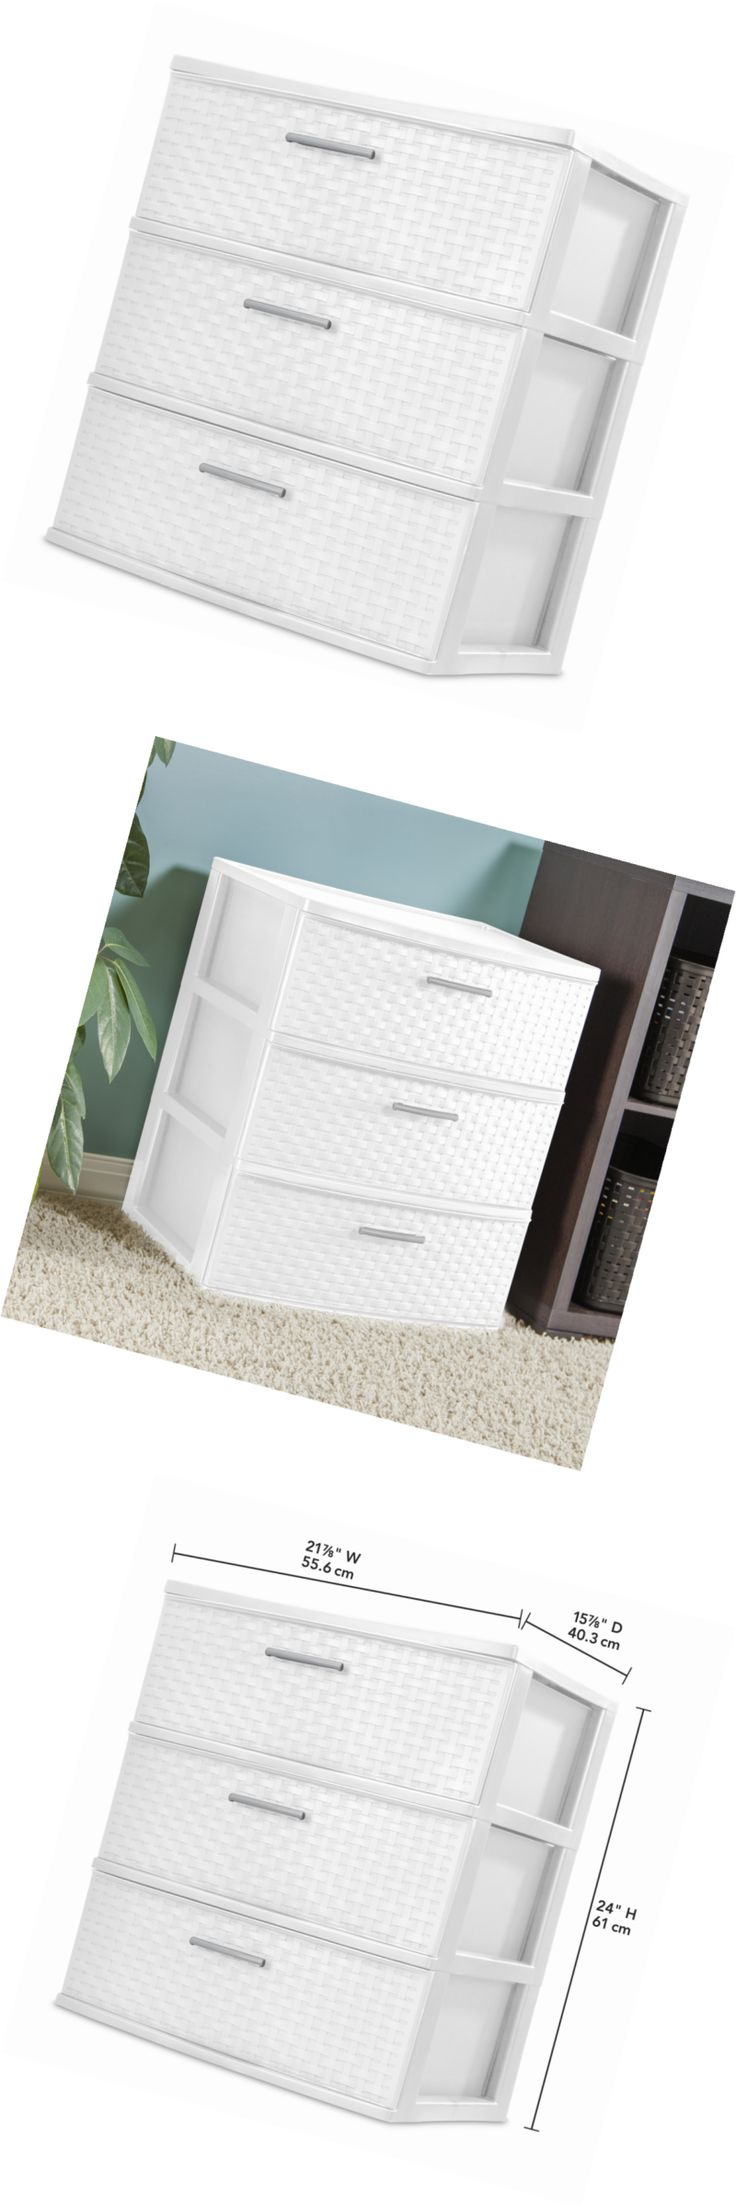 White tilt out clothes storage basket bin bathroom drawer ebay - Storage Bins And Baskets 159898 Sterilite 3 Drawer Wide Weave Tower White